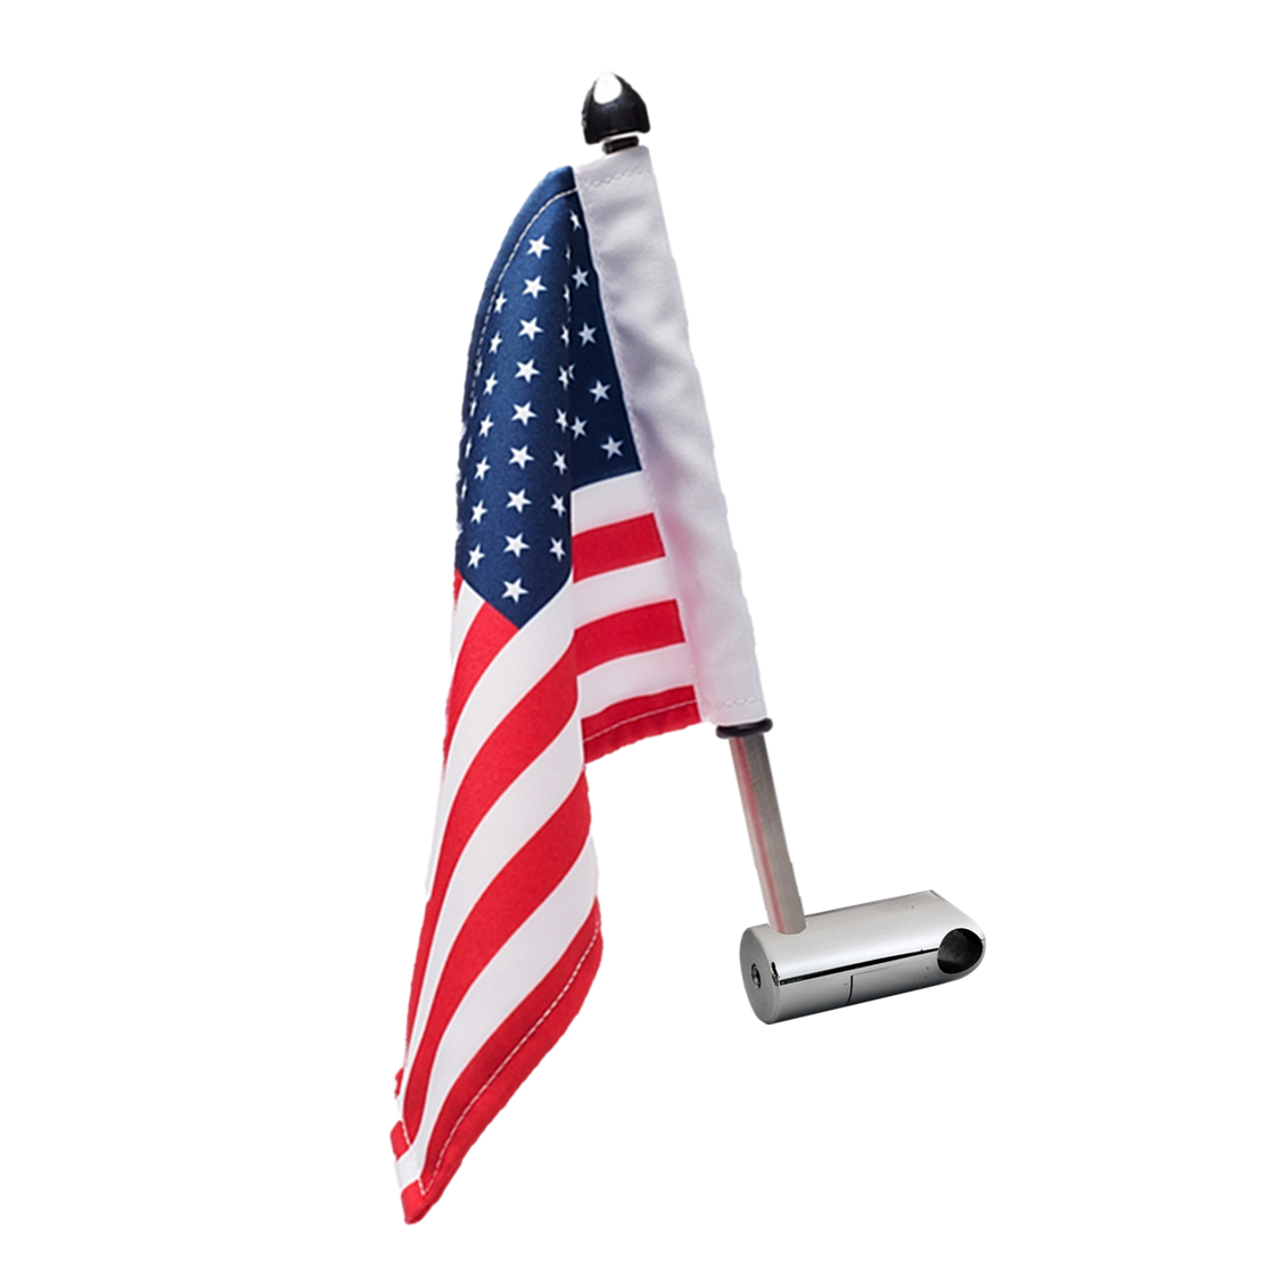 """#RFM-RDHB12 with 9"""" pole, standard cone topper and 6""""x9"""" highway flag"""